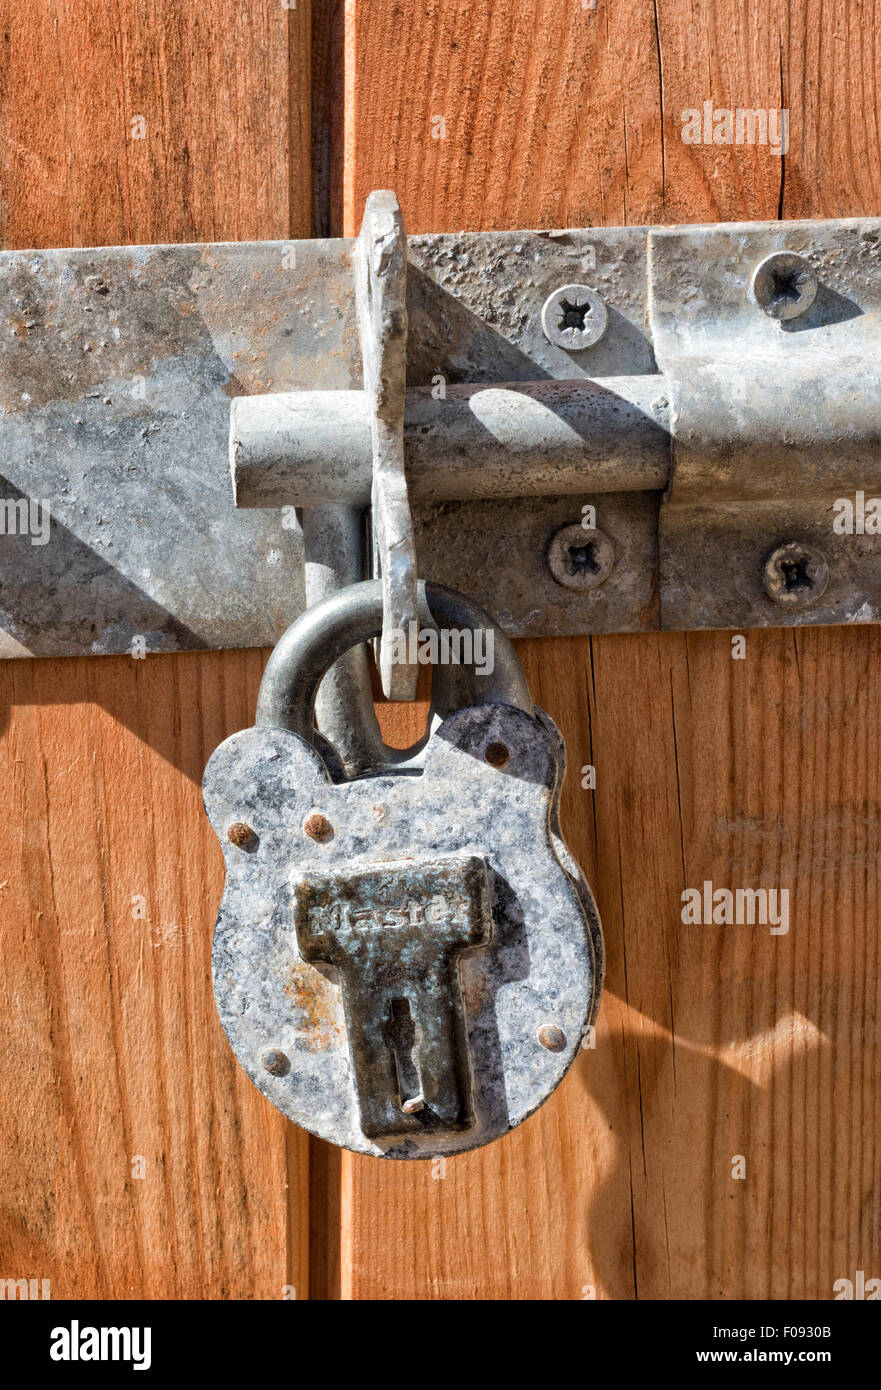 shed door padlock stockfotos shed door padlock bilder alamy. Black Bedroom Furniture Sets. Home Design Ideas